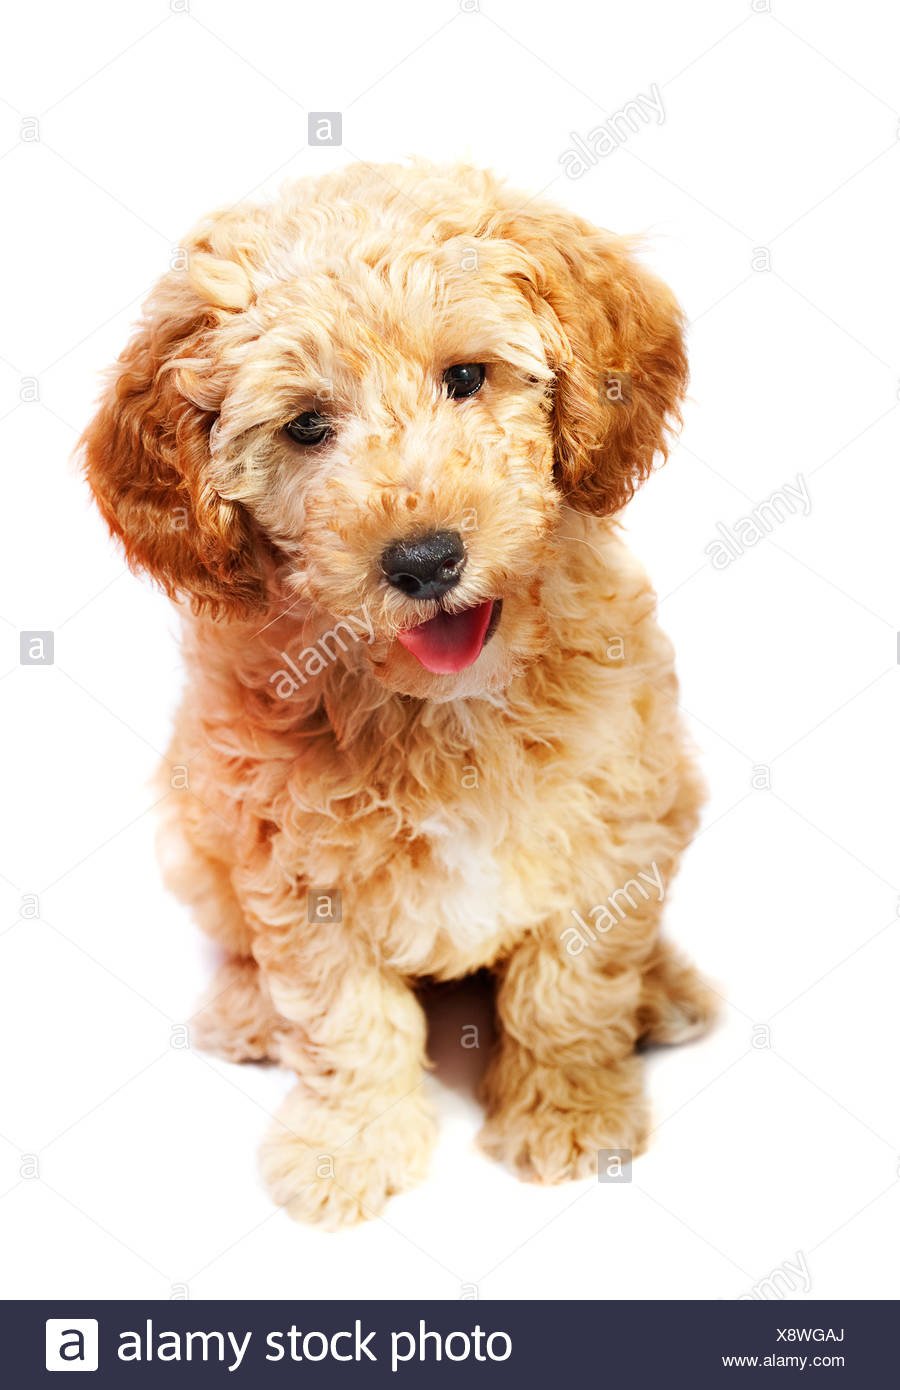 Apricot Poodle Puppy Isolated Over White Stock Photo 280844778 Alamy